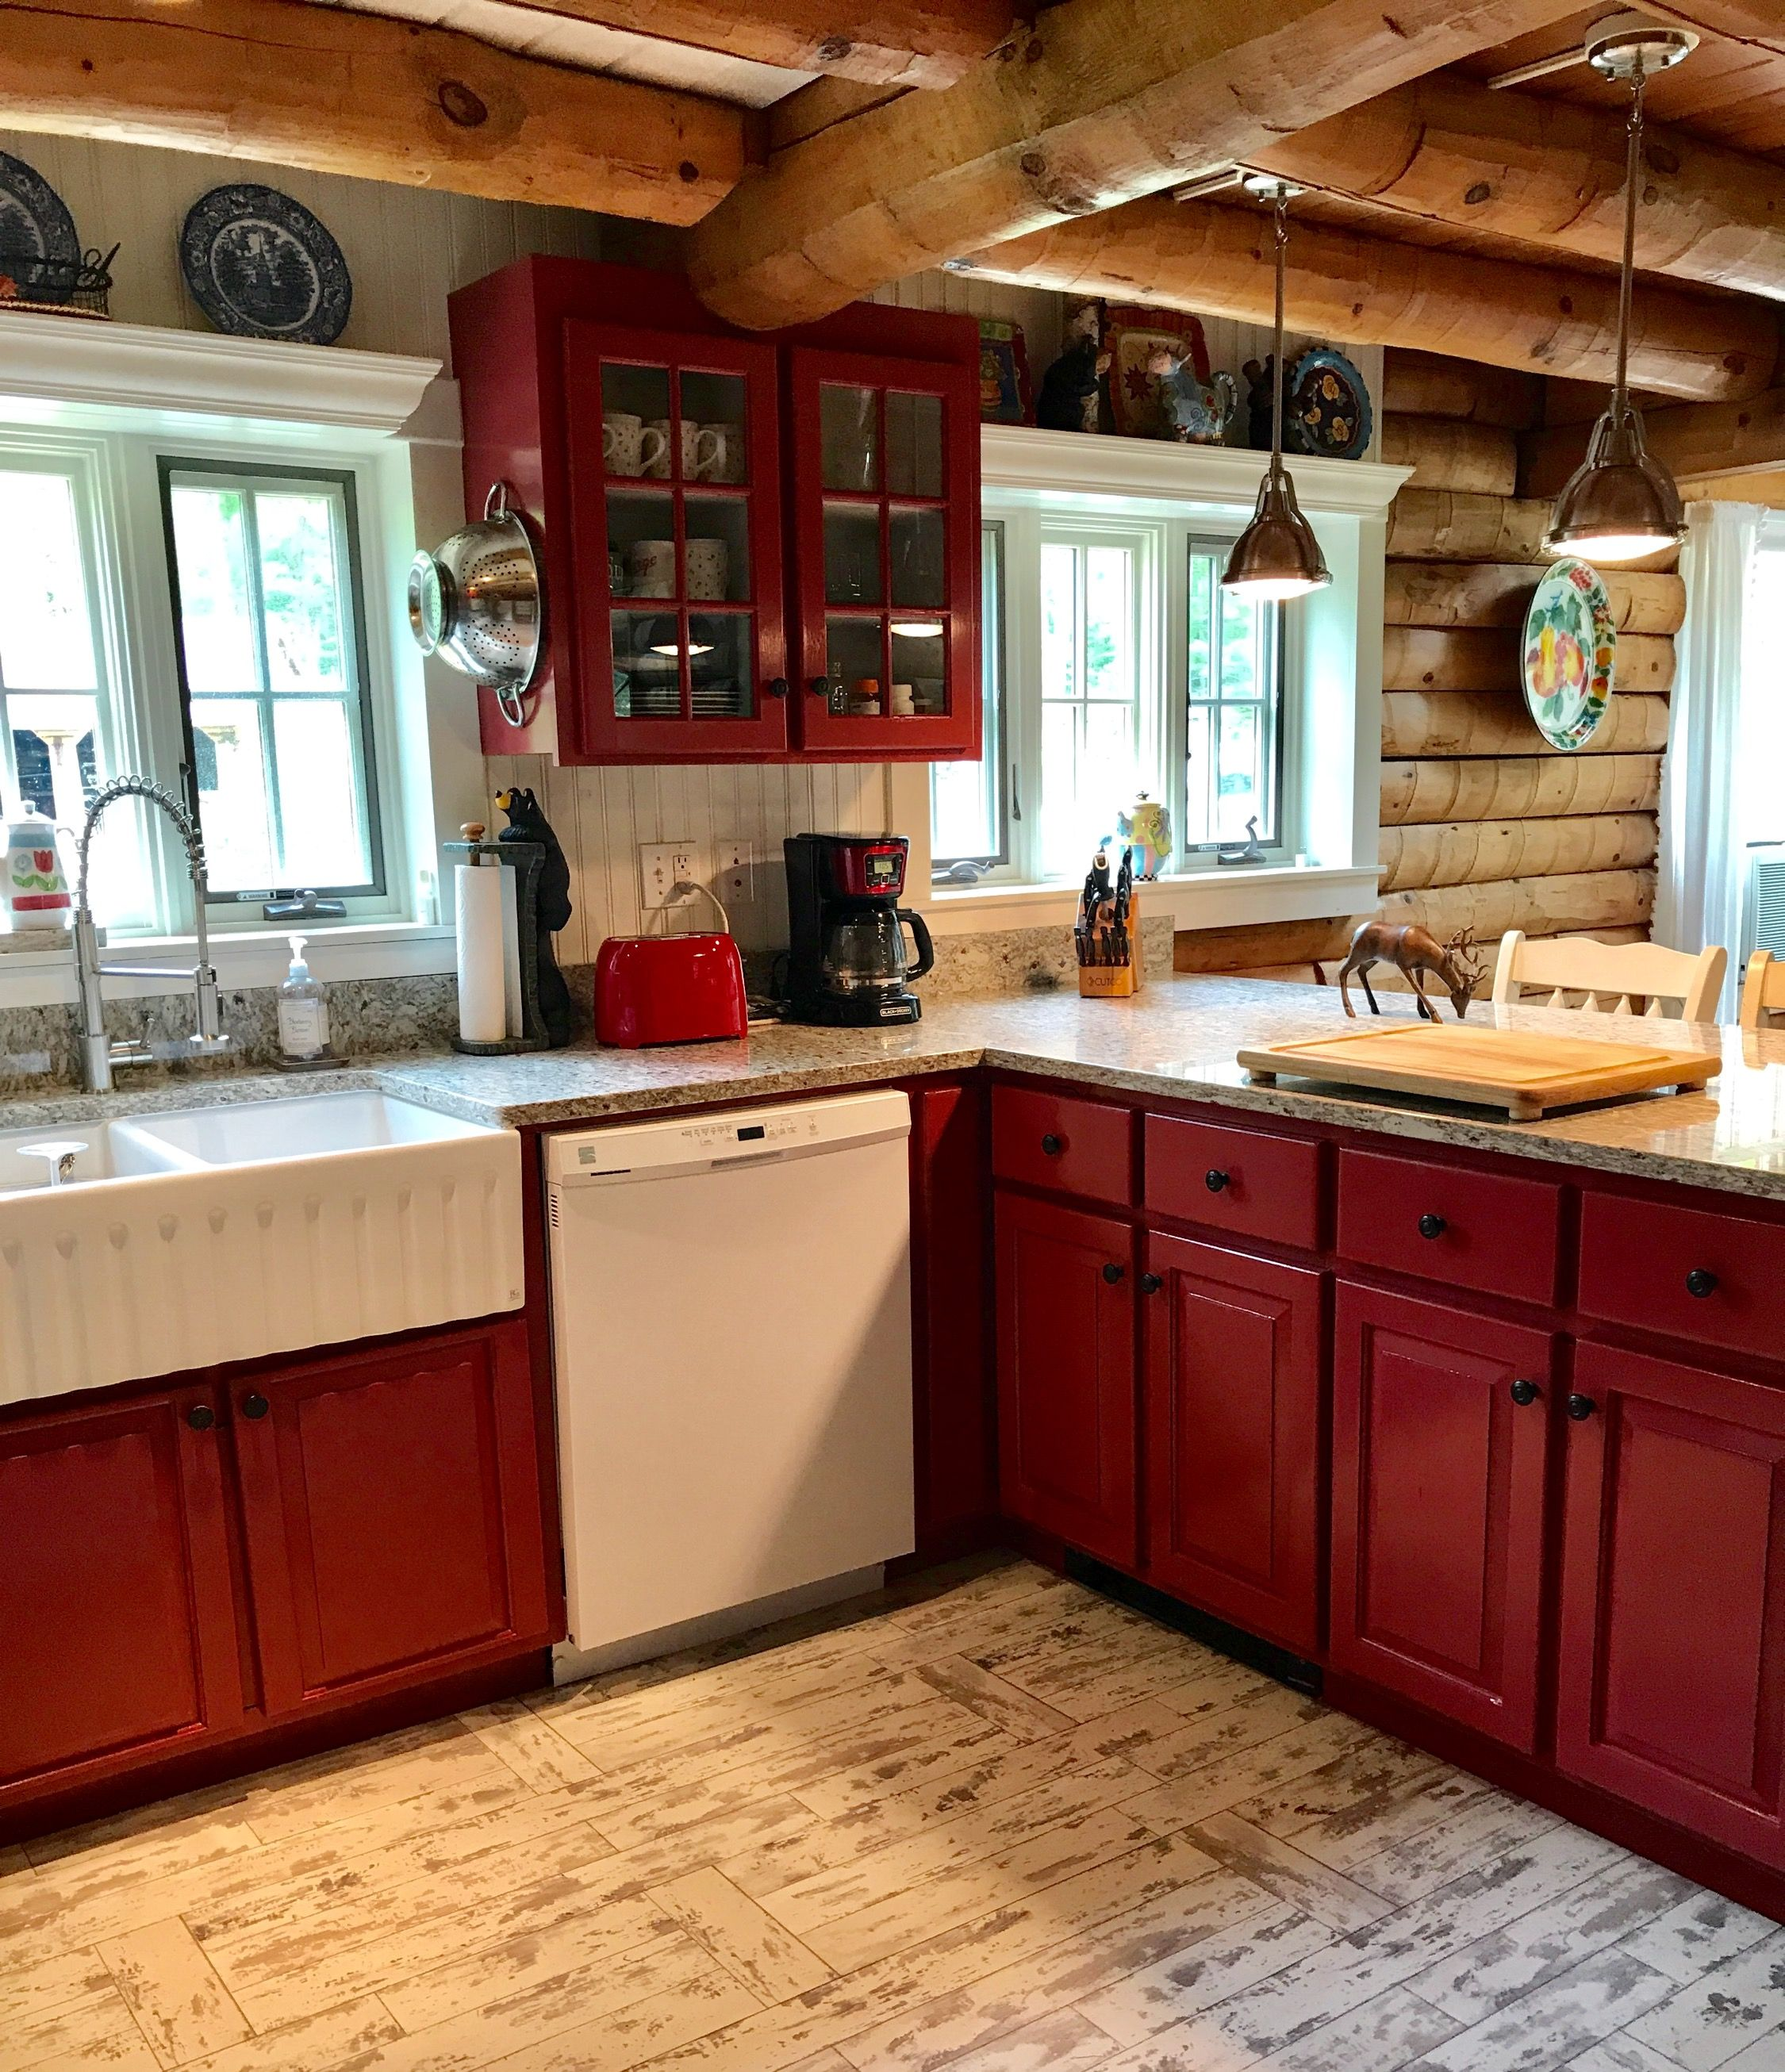 Log Cabin Kitchen With Red Painted Wood Cabinets So Charming Log Cabin Kitchens Cabin Kitchens Log Home Kitchens